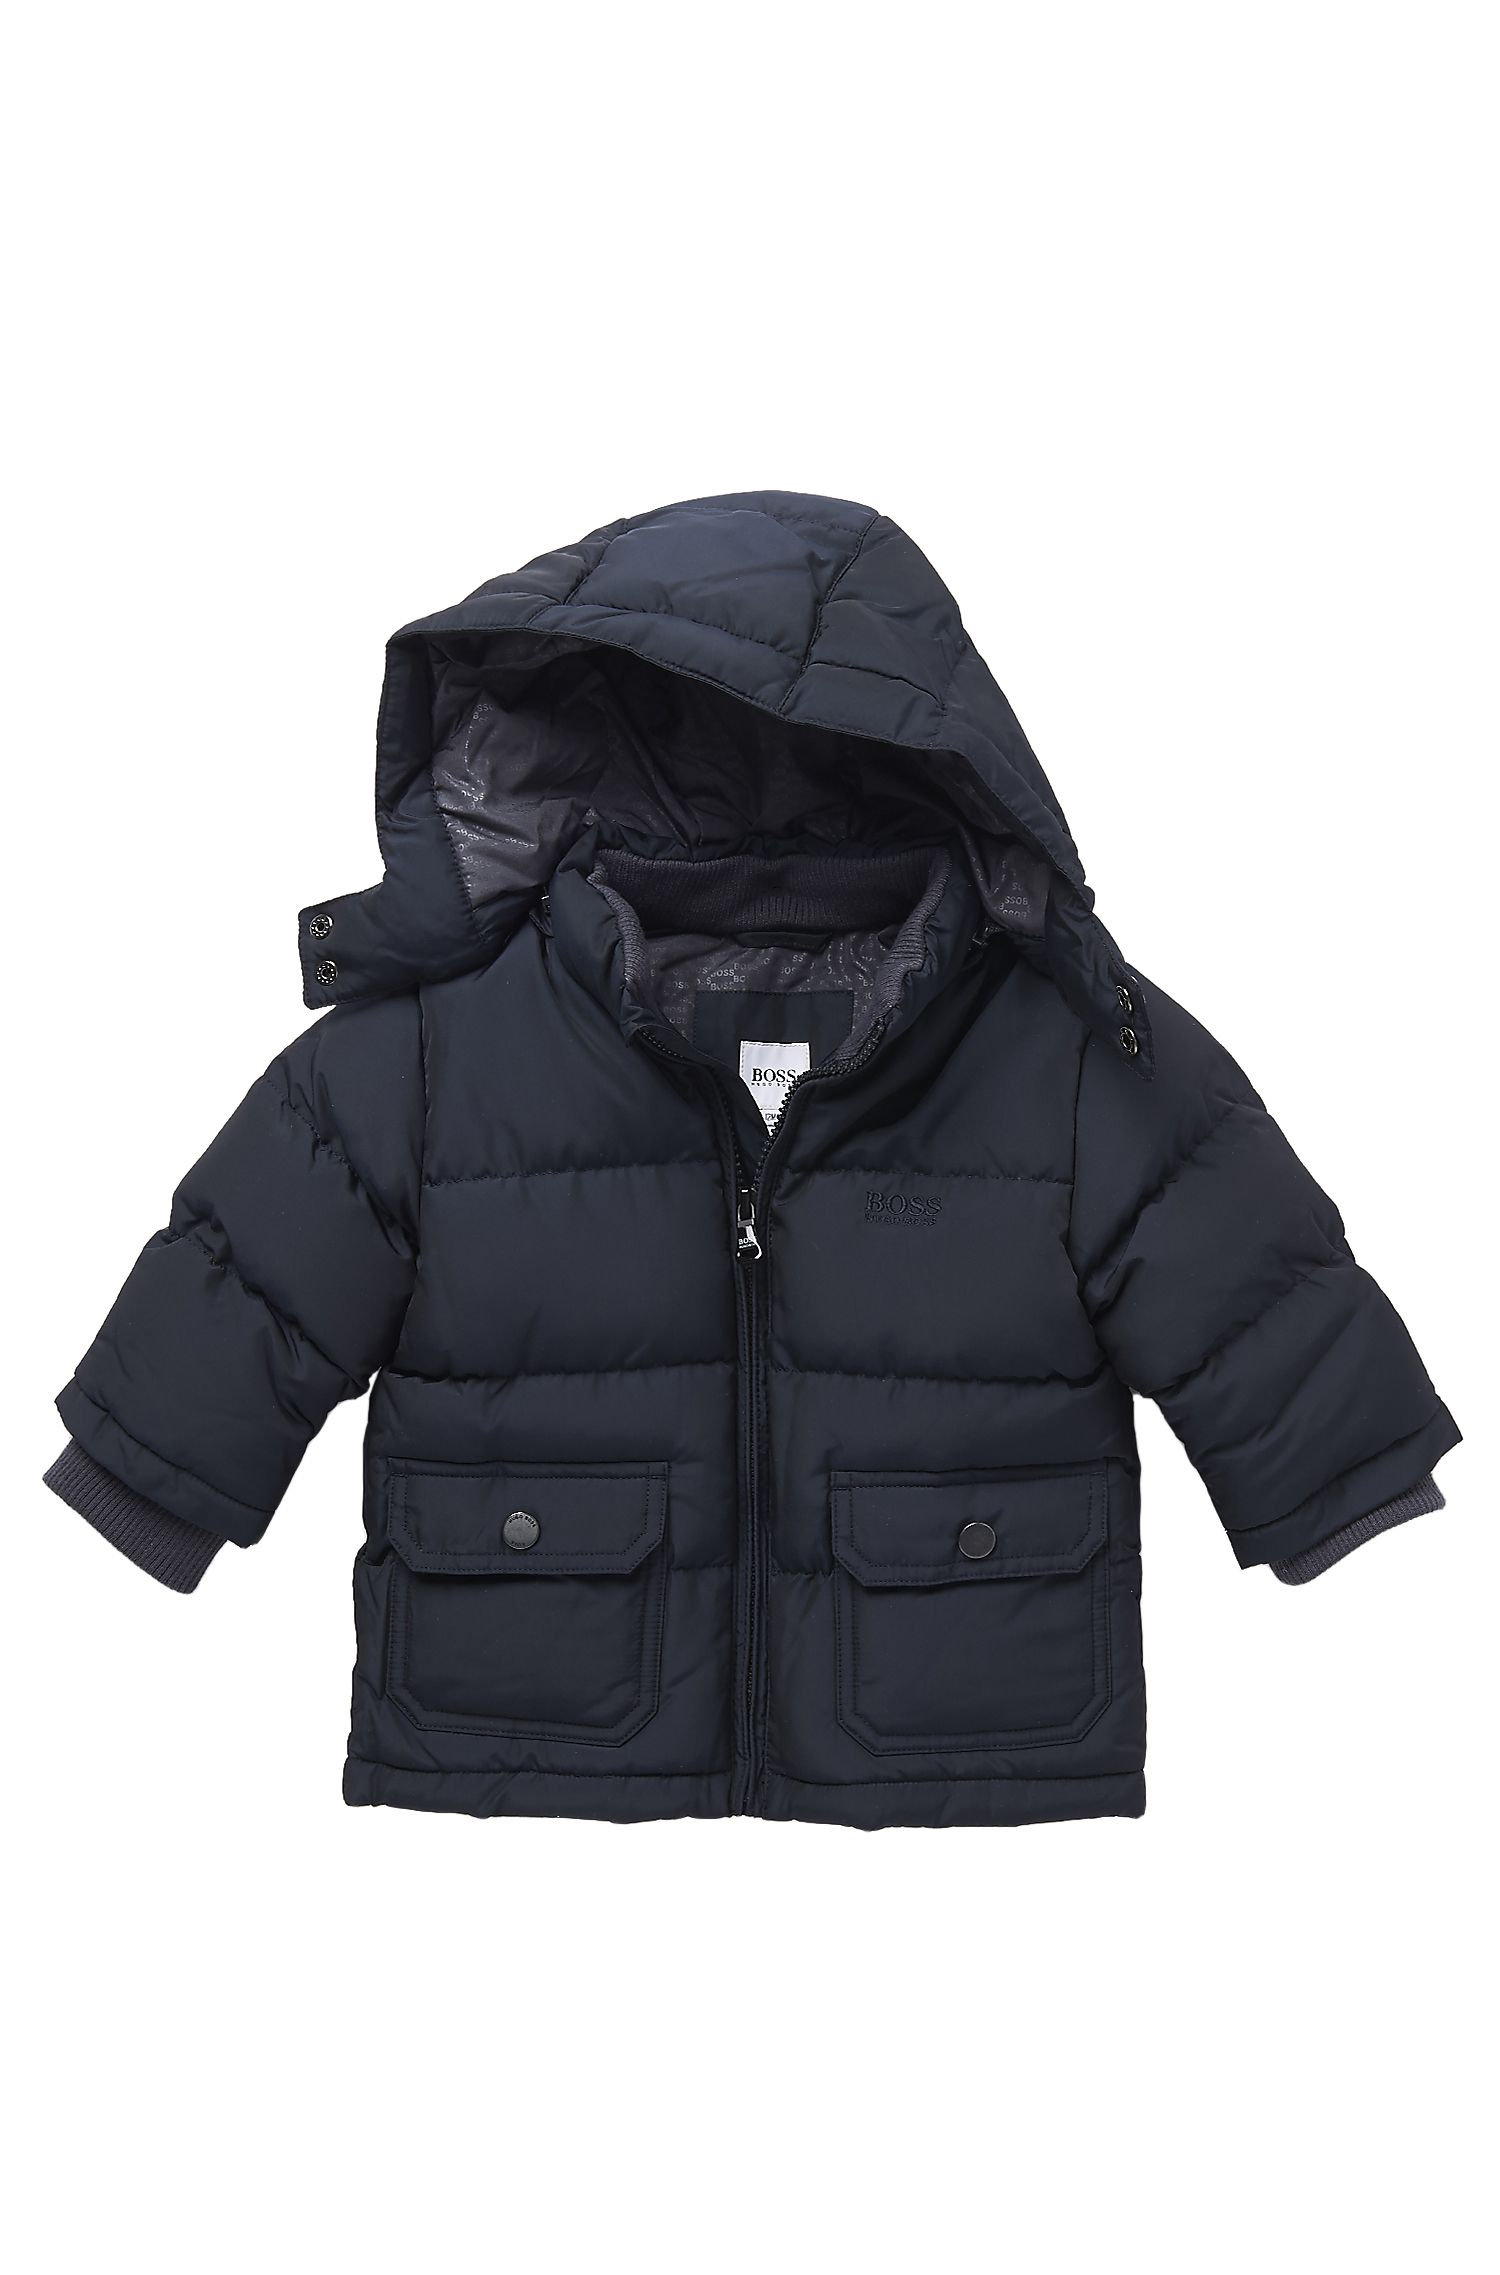 'J06076' | Toddler Polyester Blend Quilted Jacket with Detachable Hood